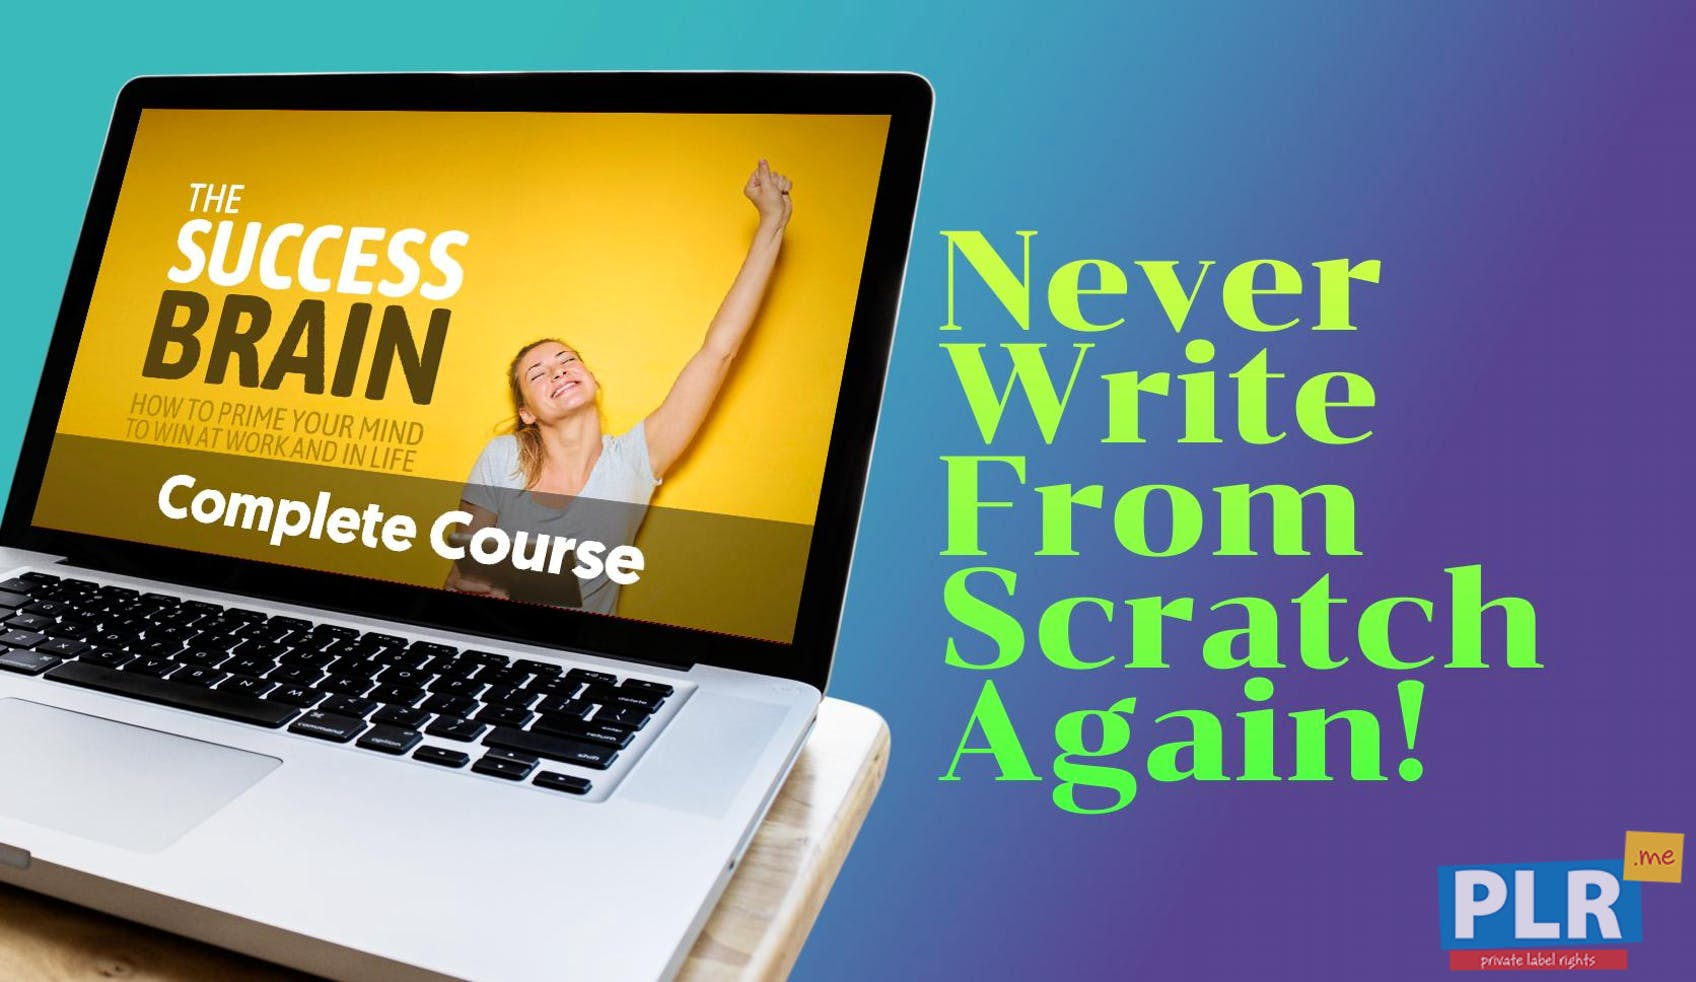 The Success Brain PLR Course: How To Build A Success Mindset Through SMART Goals And Healthy Habits